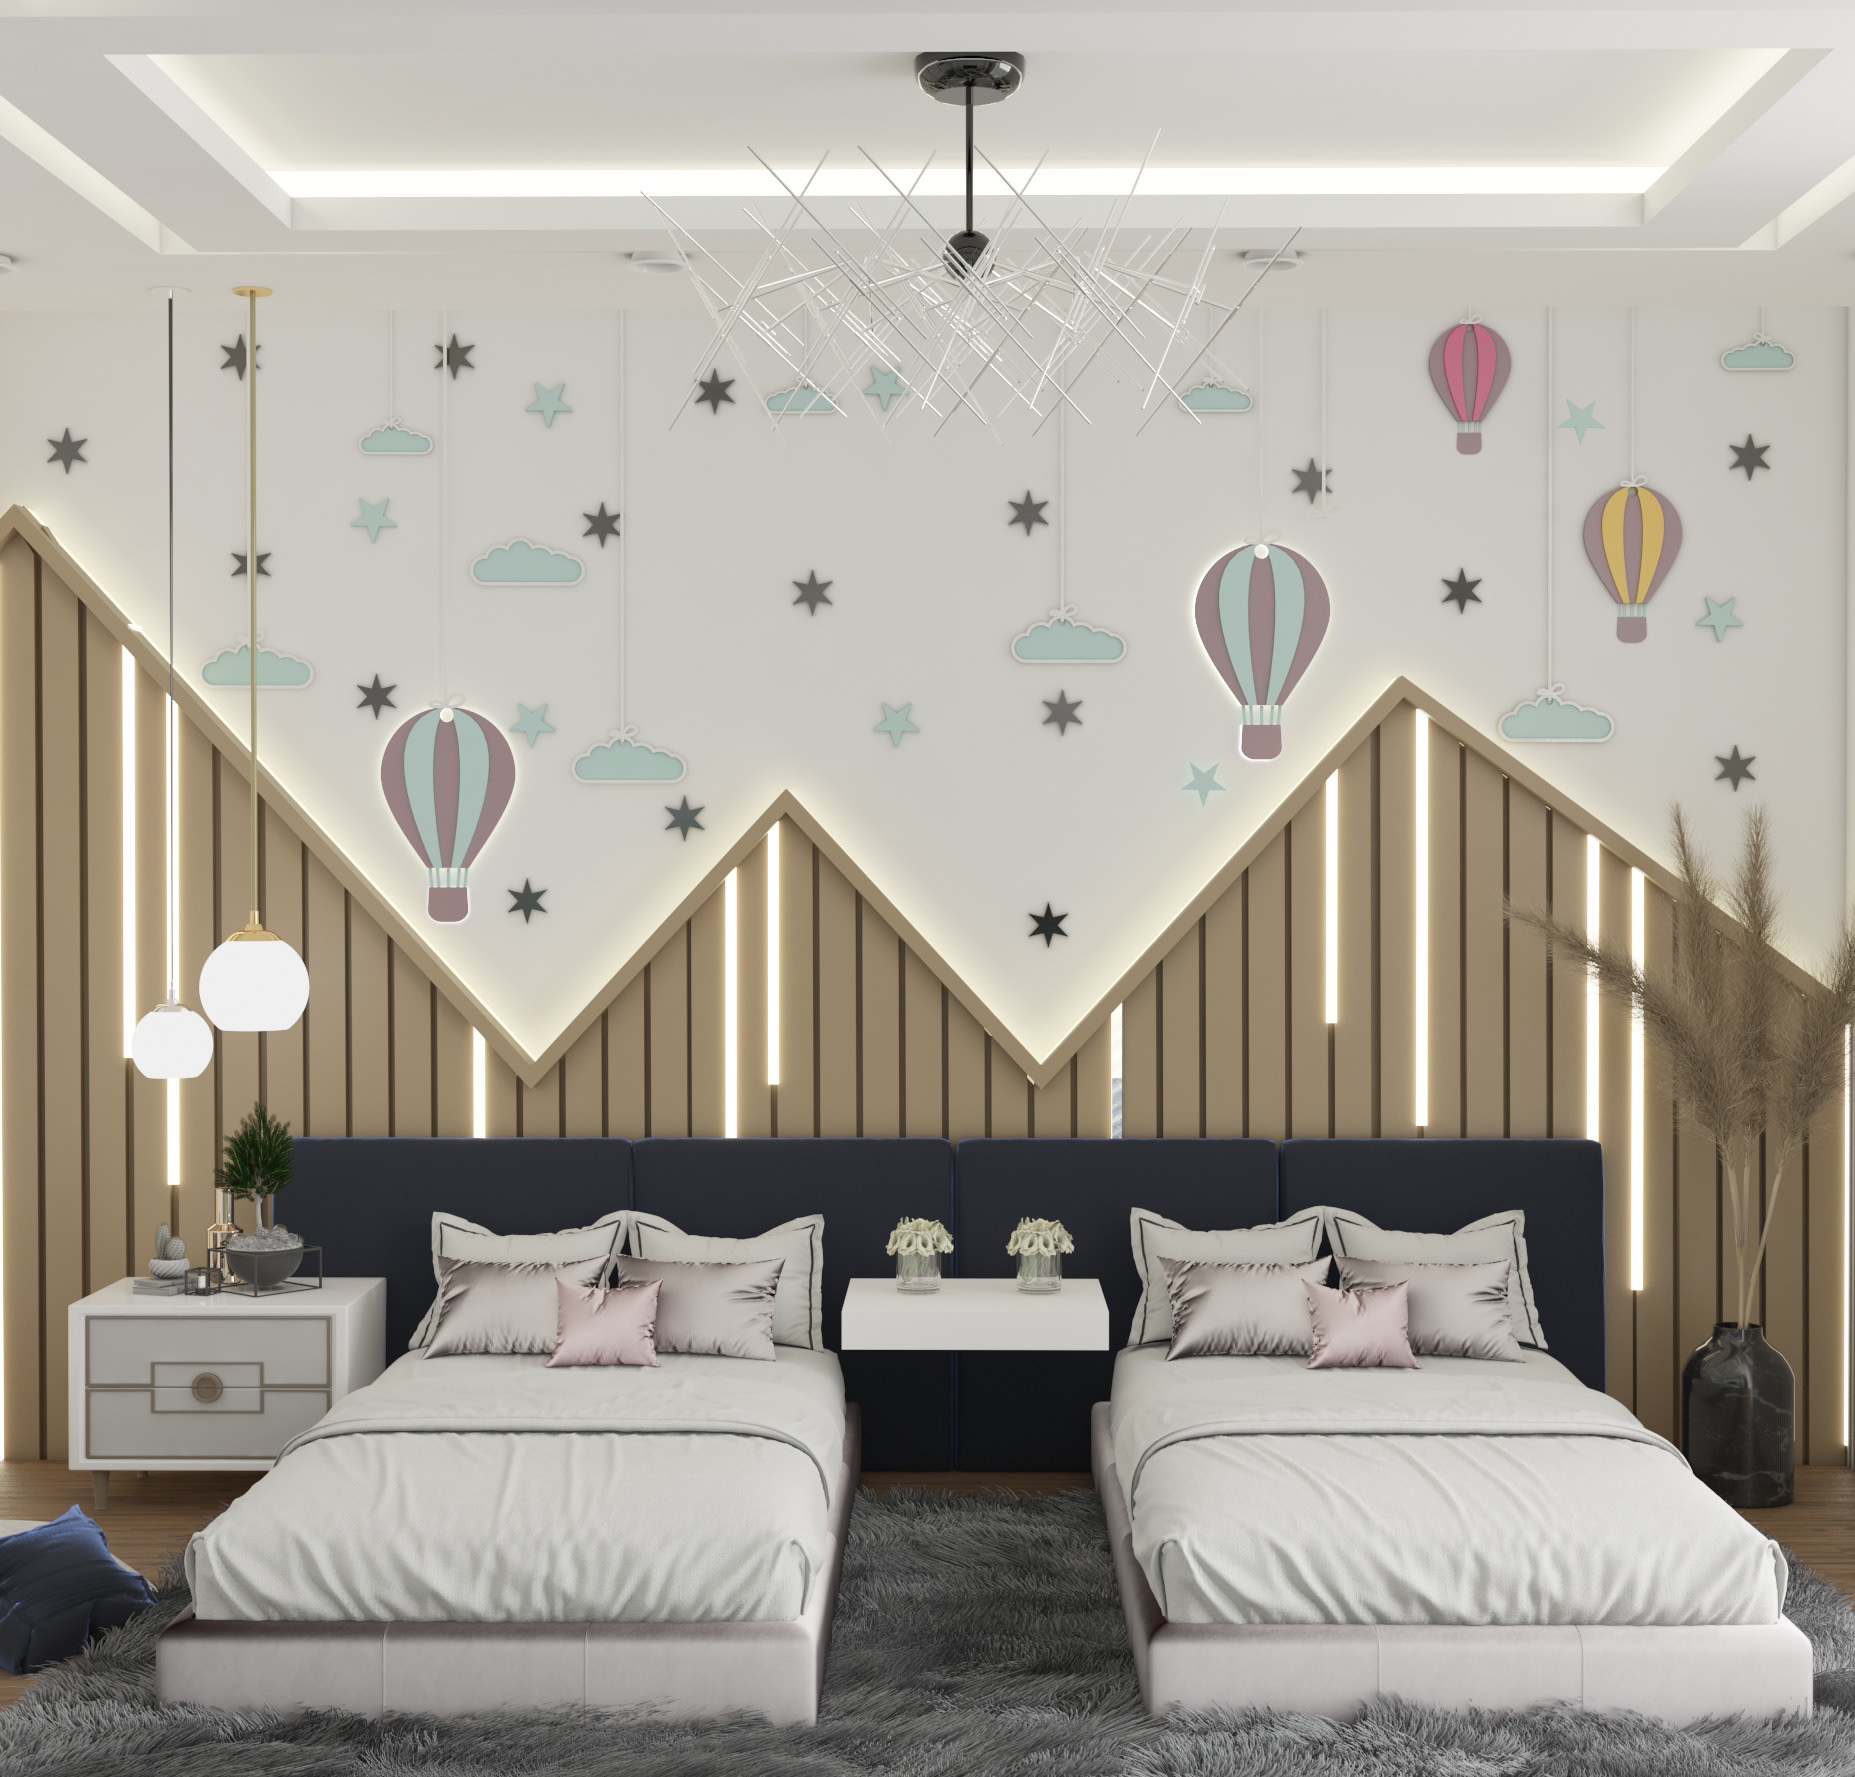 Hot Air Balloon Theme Kids Shared Bedroom With Amazing Lights